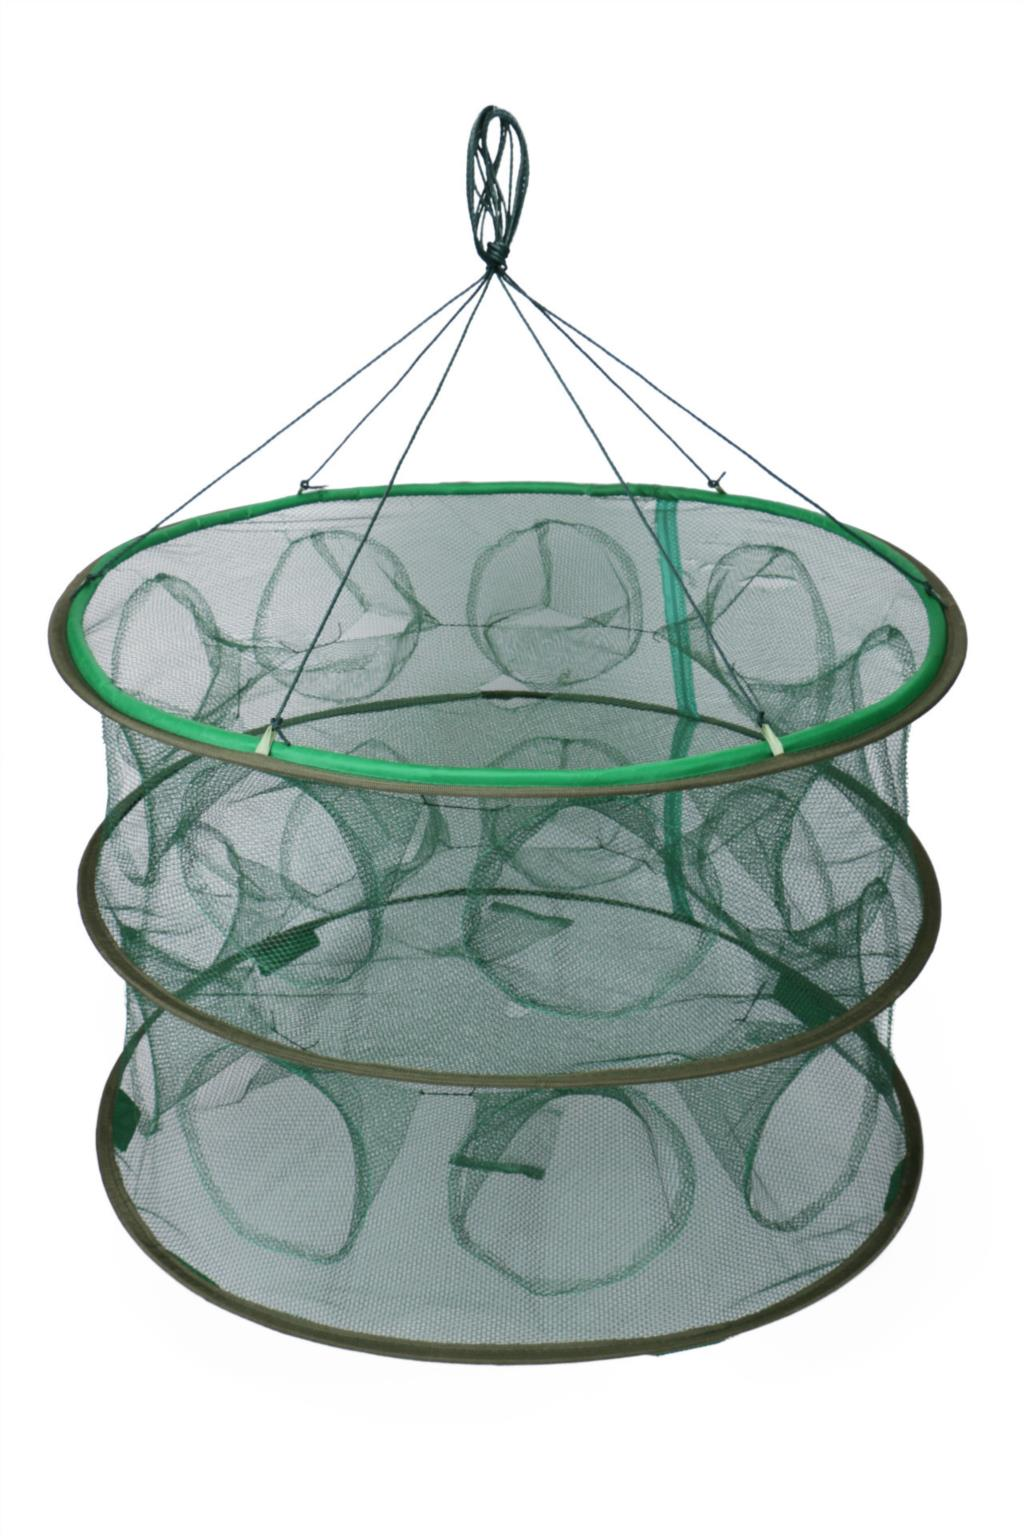 Portable Fishing Cages...